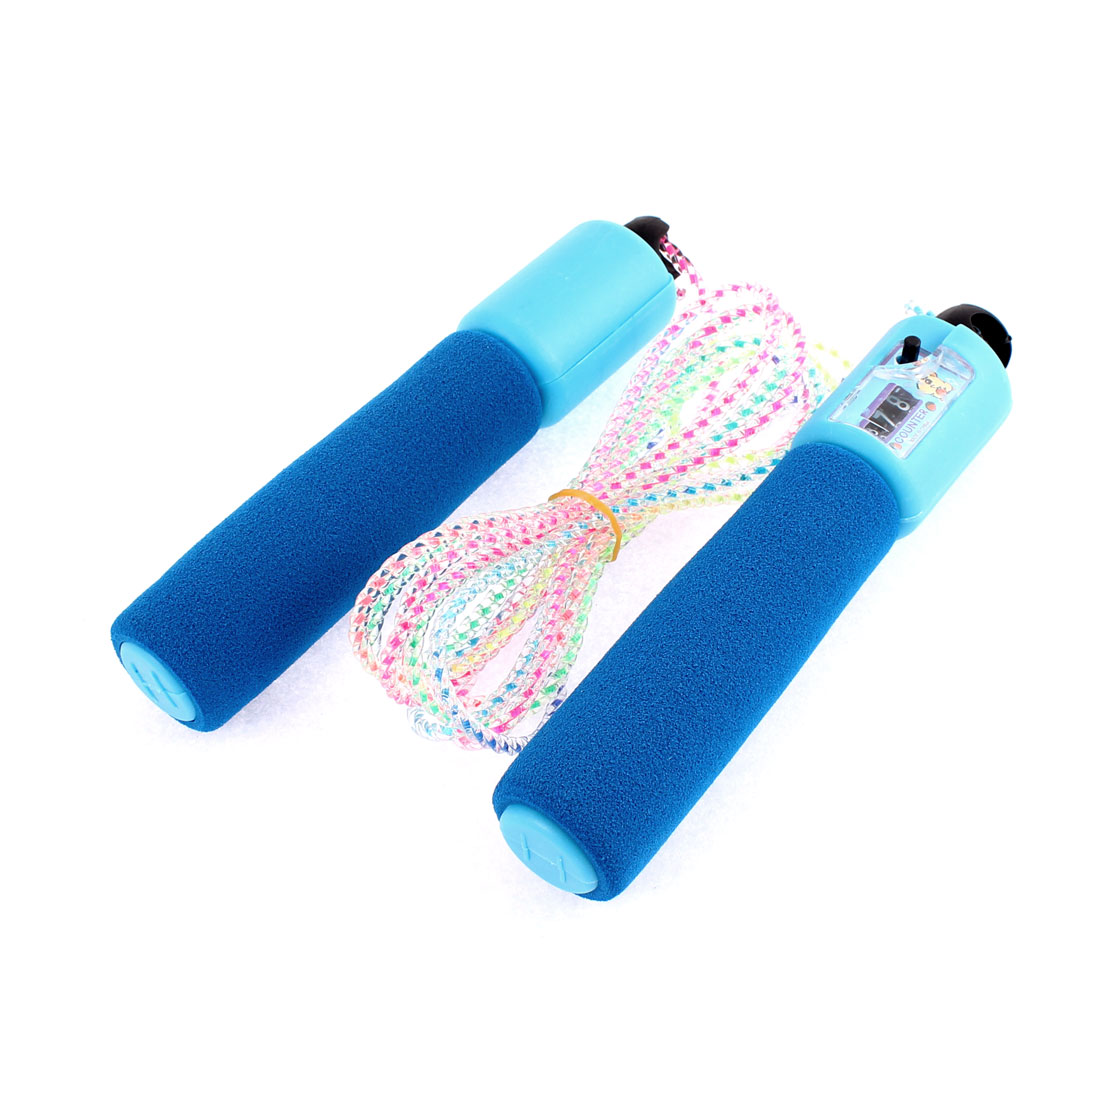 Sponge Handle Fitness Digital Counter Skipping Jumping Rope Blue